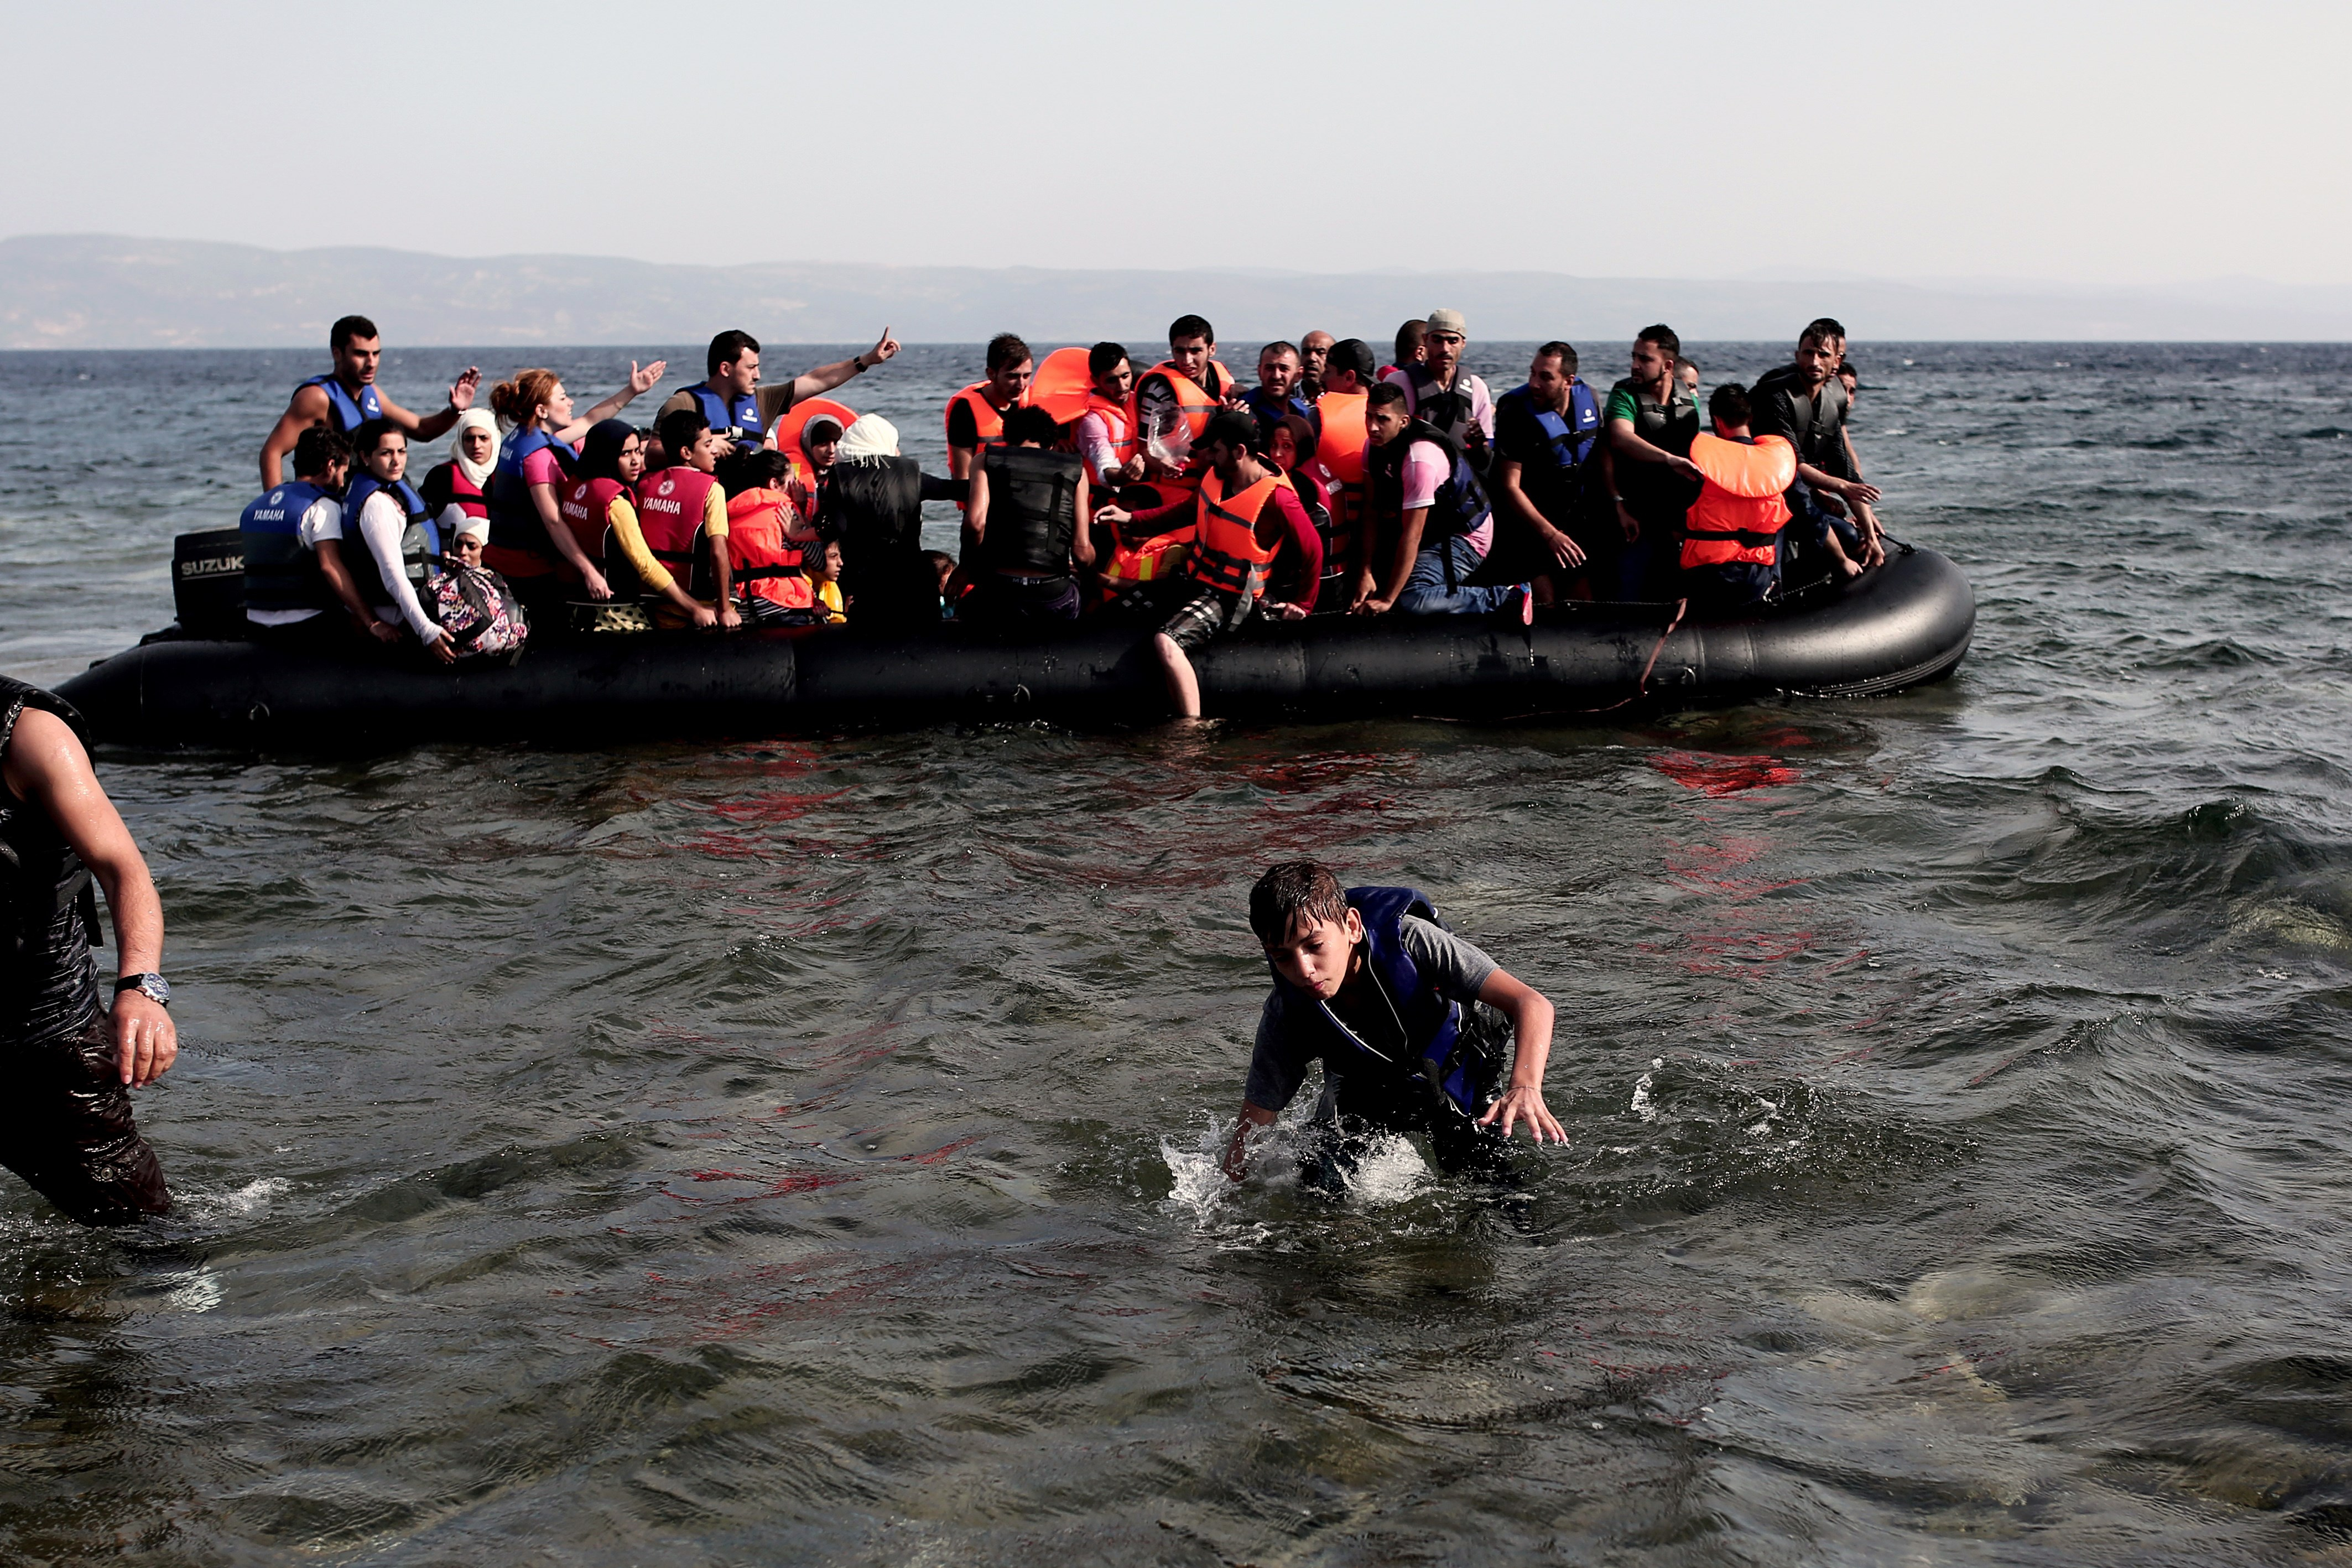 Why the U.S. Can't Immediately Resettle Syrian Refugees ...